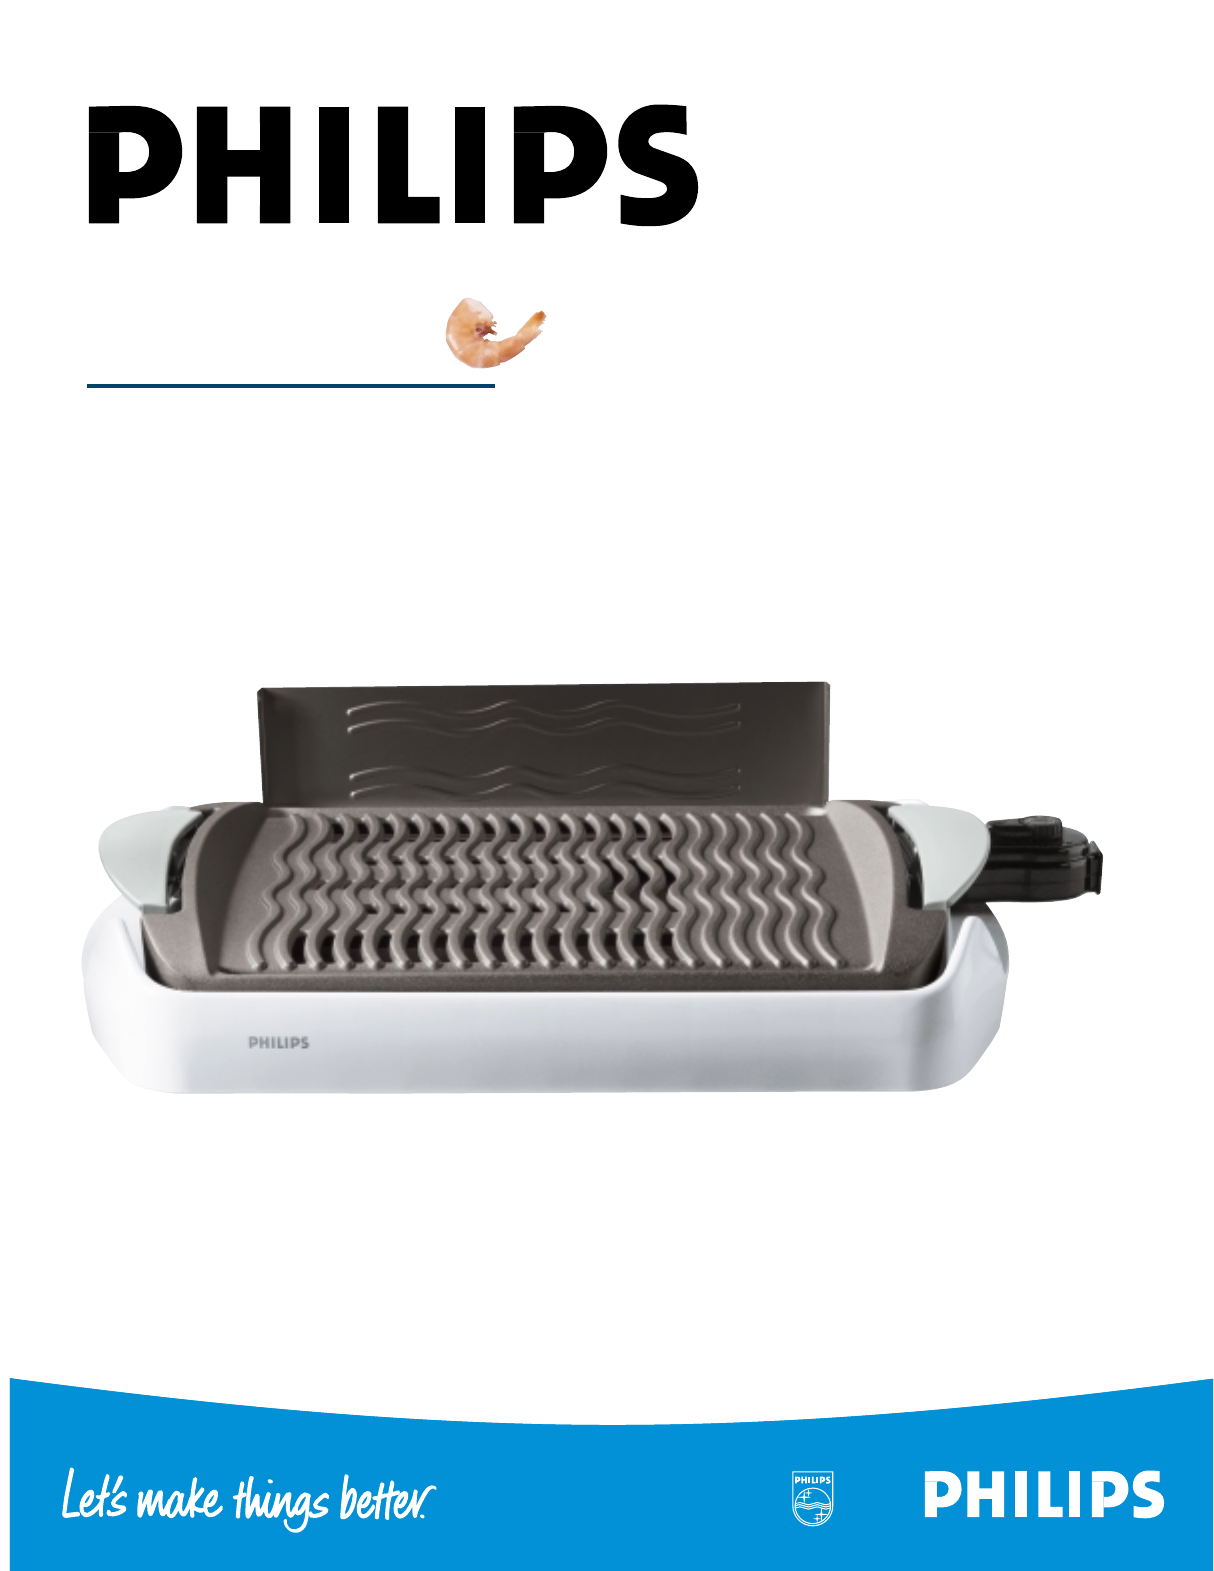 Philips Bread Maker Hl5231 User Guide Manualsonline Com border=